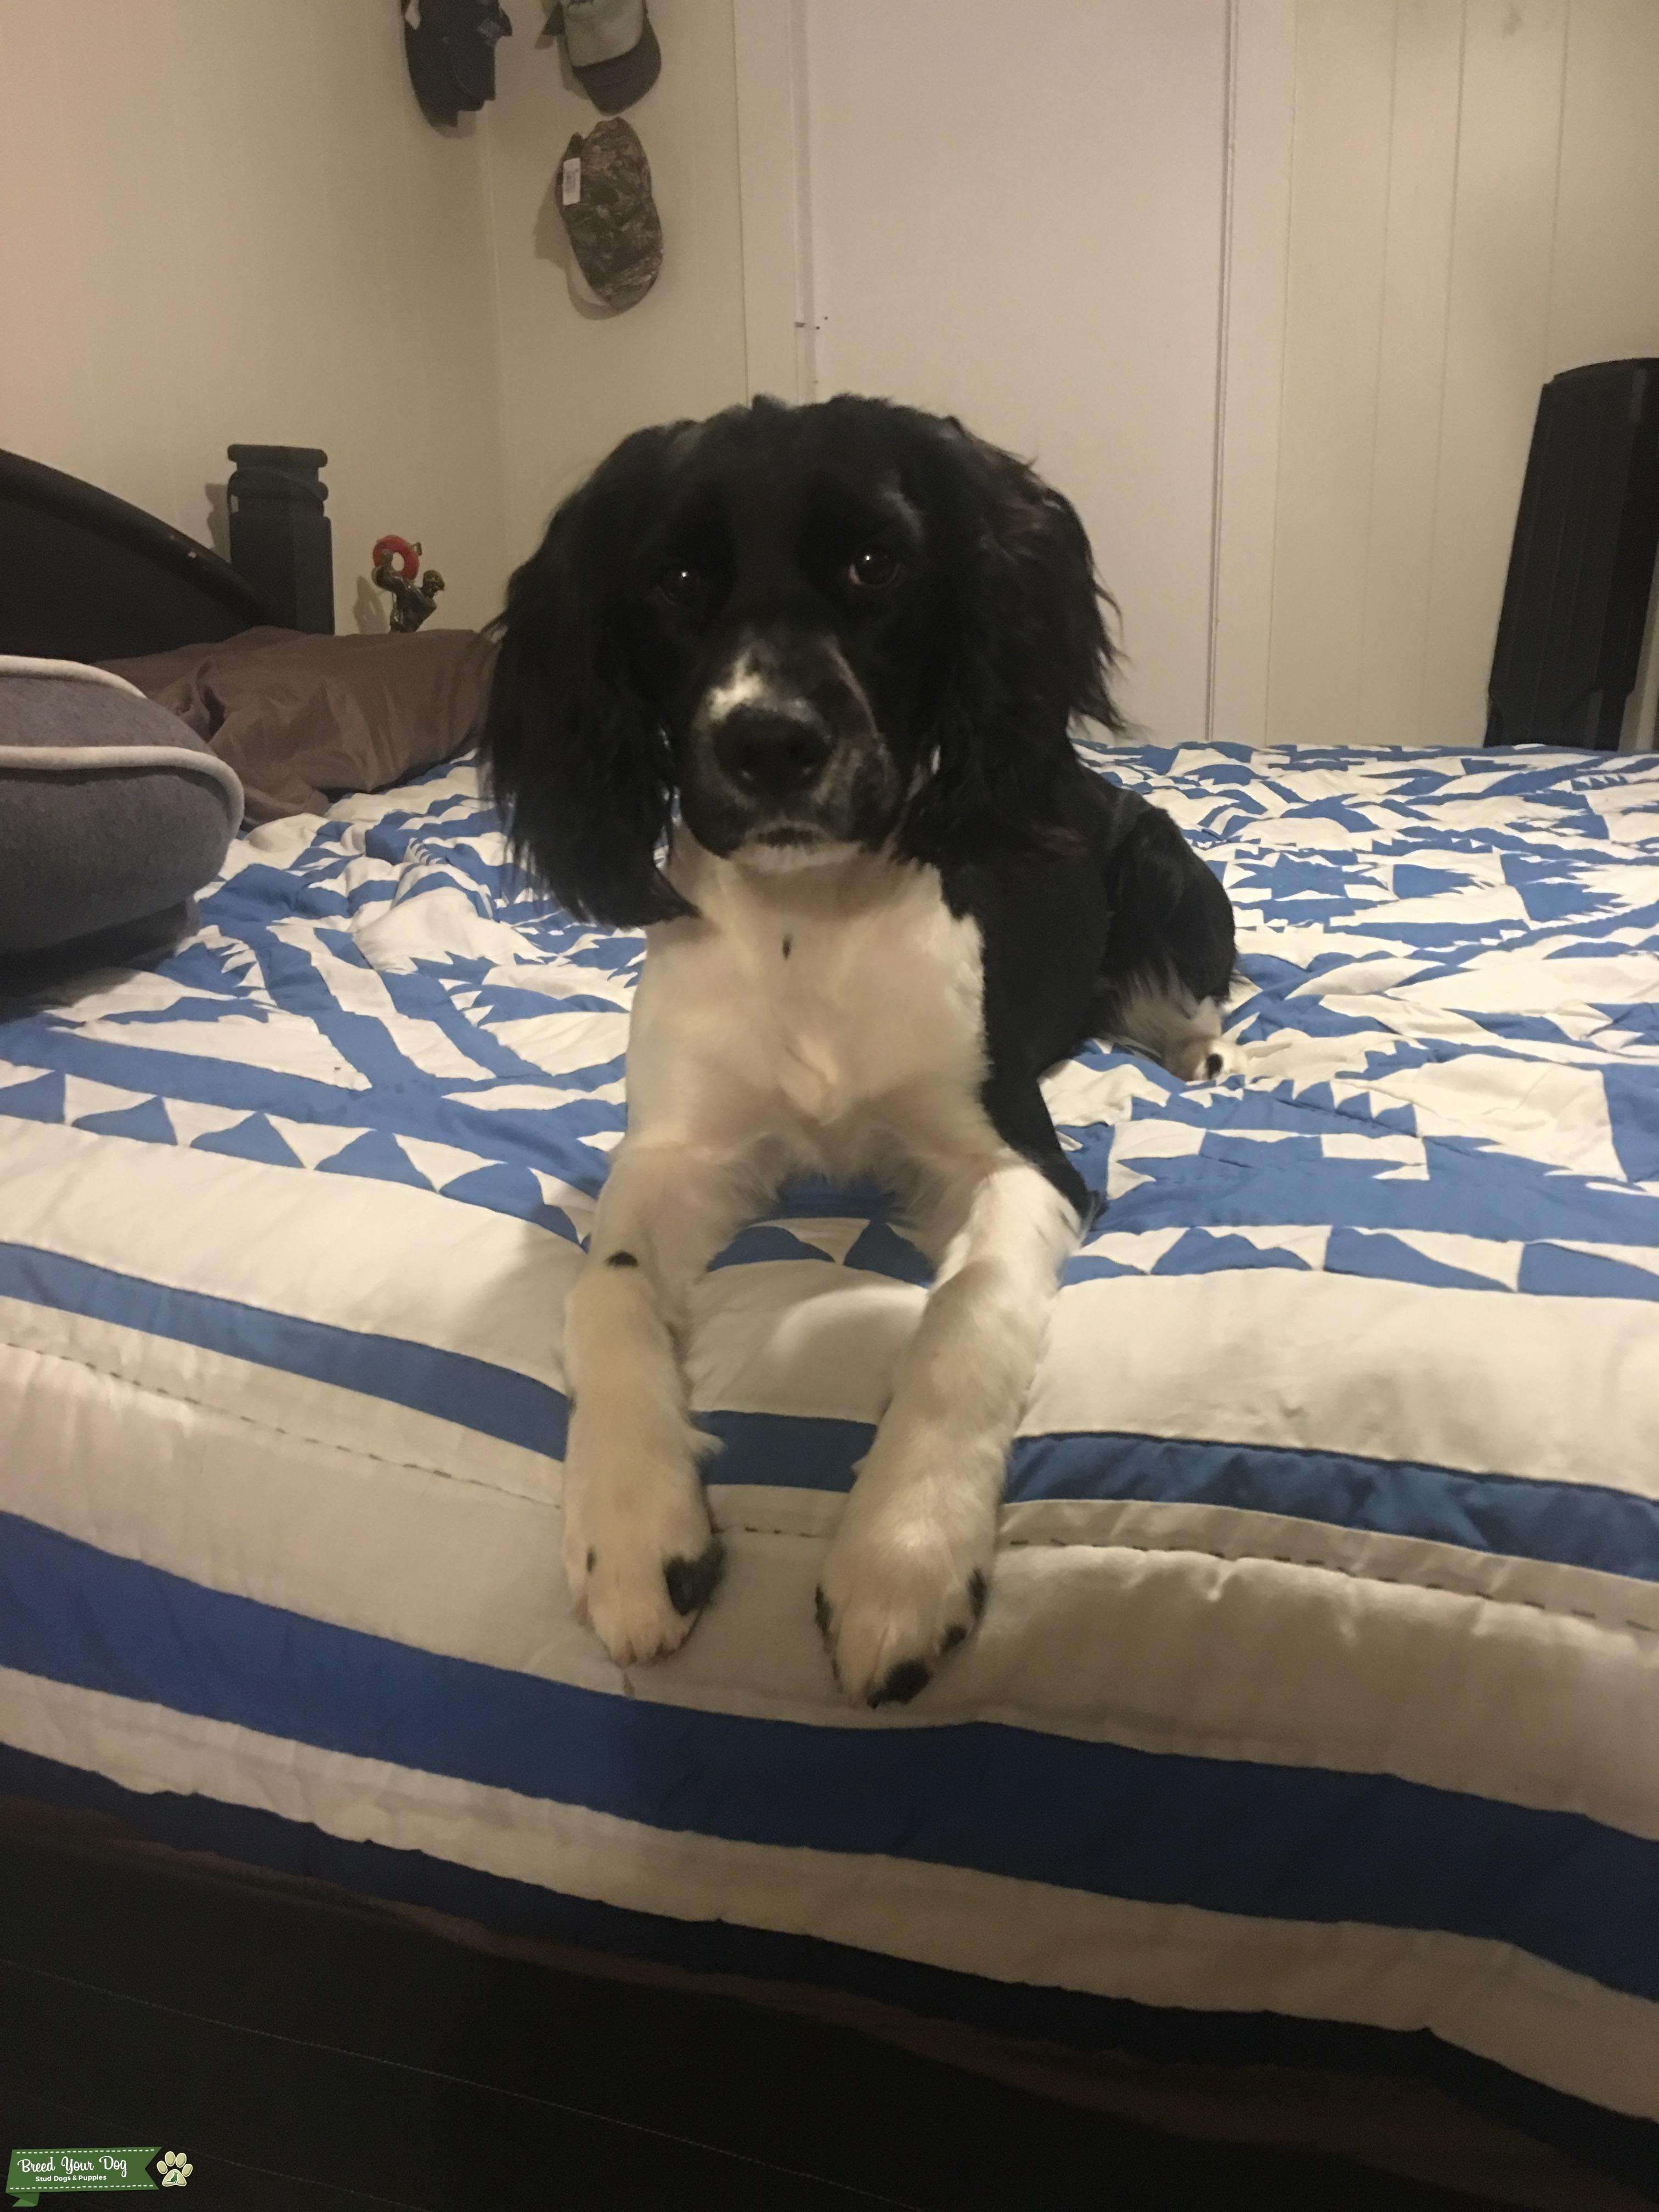 AKC Female English Springer Spaniel looking to breed after she is a year old Listing Image Big